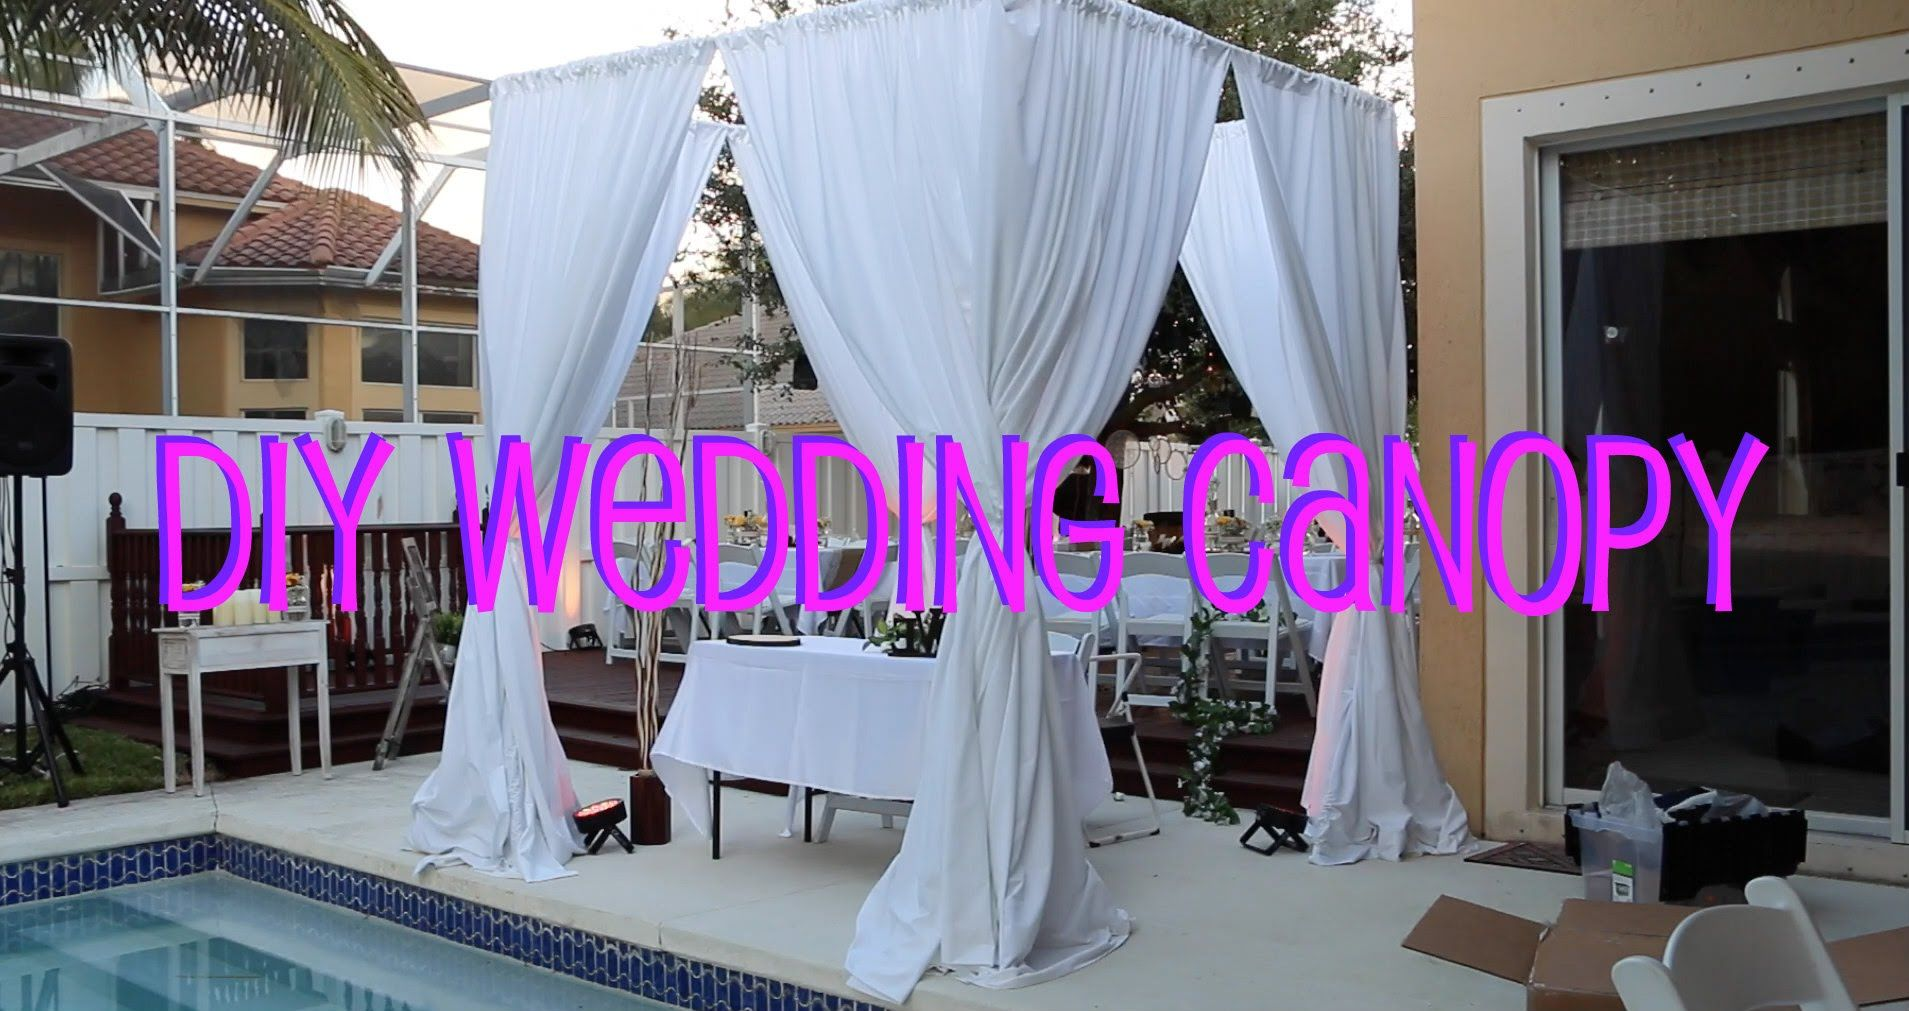 Learn how to setup do it yourself wedding canopy in 3 easy steps learn how to setup do it yourself wedding canopy in 3 easy steps solutioingenieria Choice Image